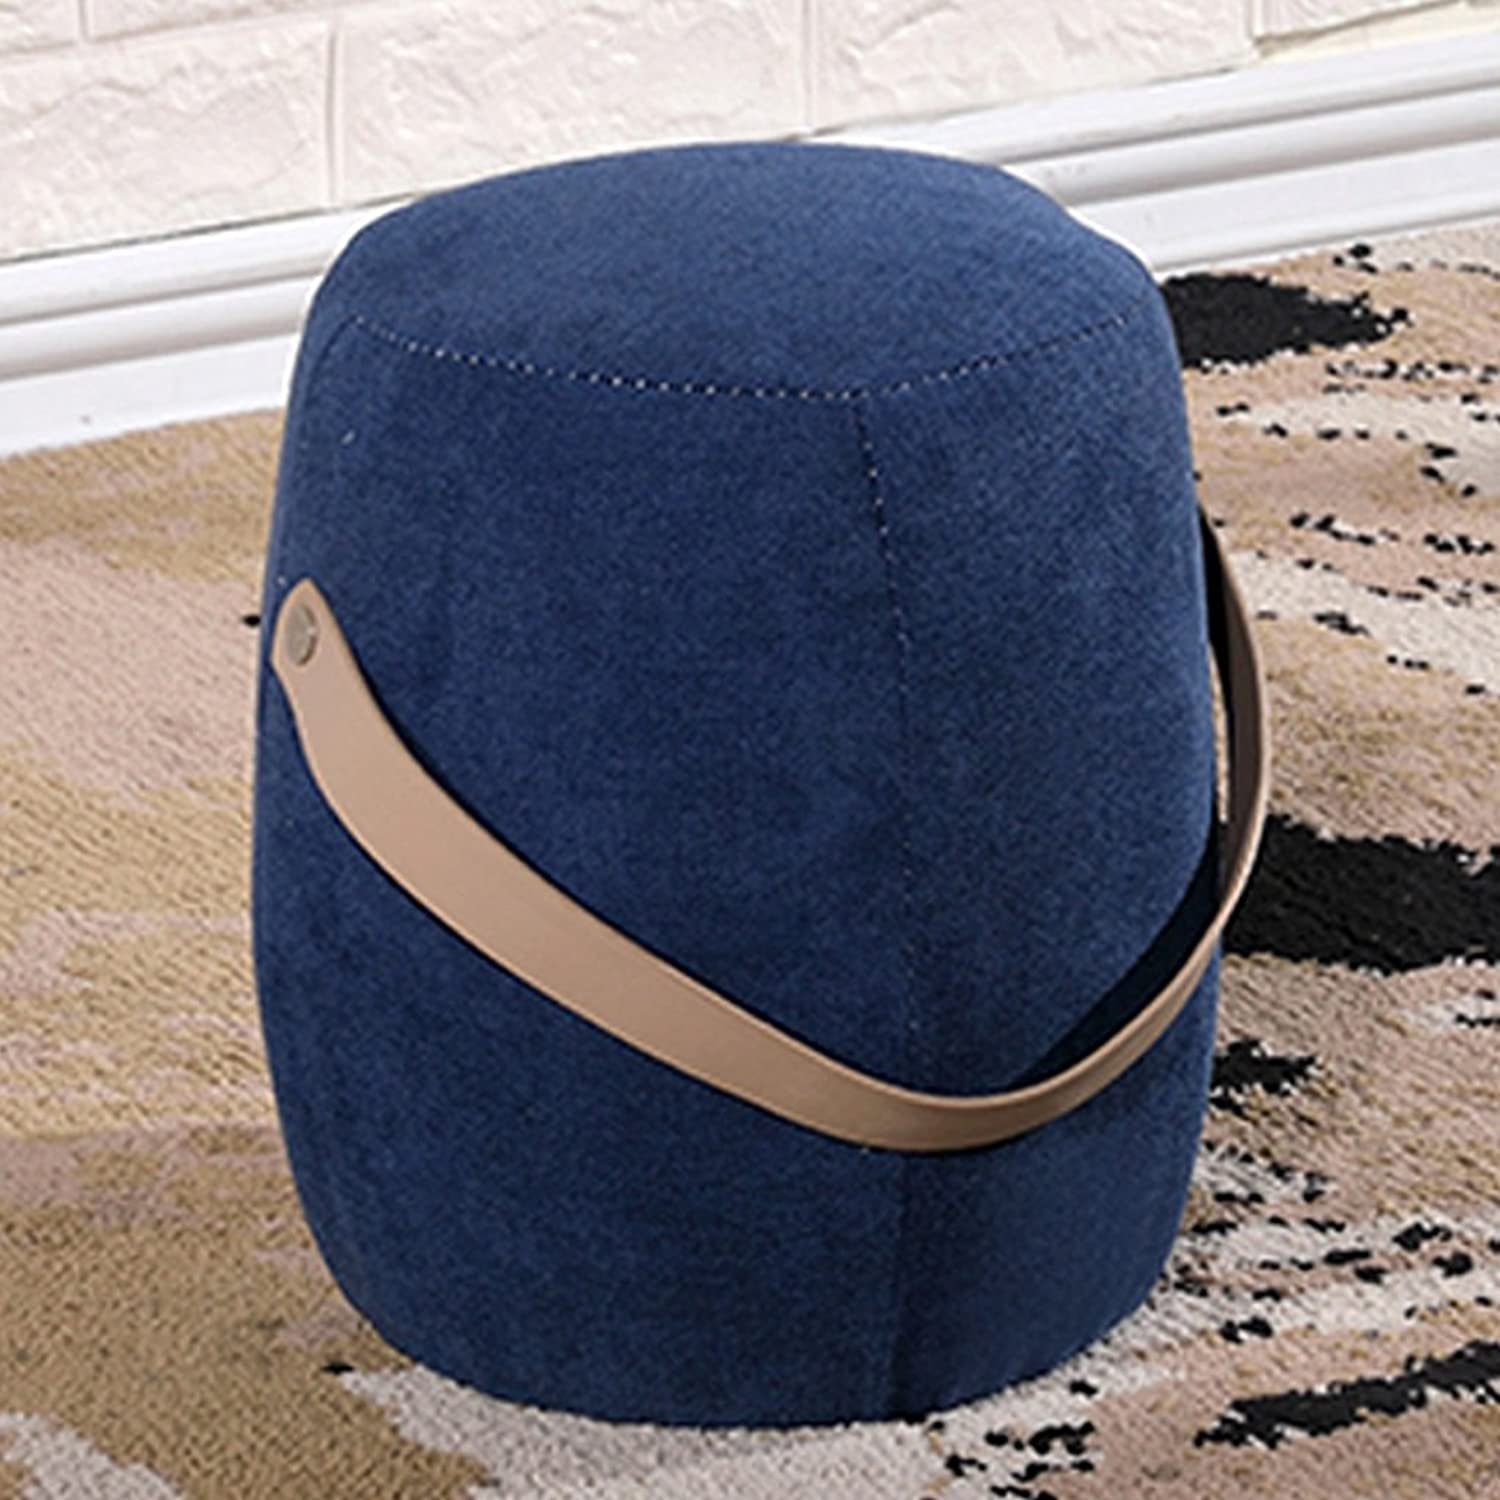 Upholstered Footstool Fabric Small Stool Living Room shoes Stool Creative Sofa Stool Hand Carry Portable Soft sedentary Comfortable not Tired